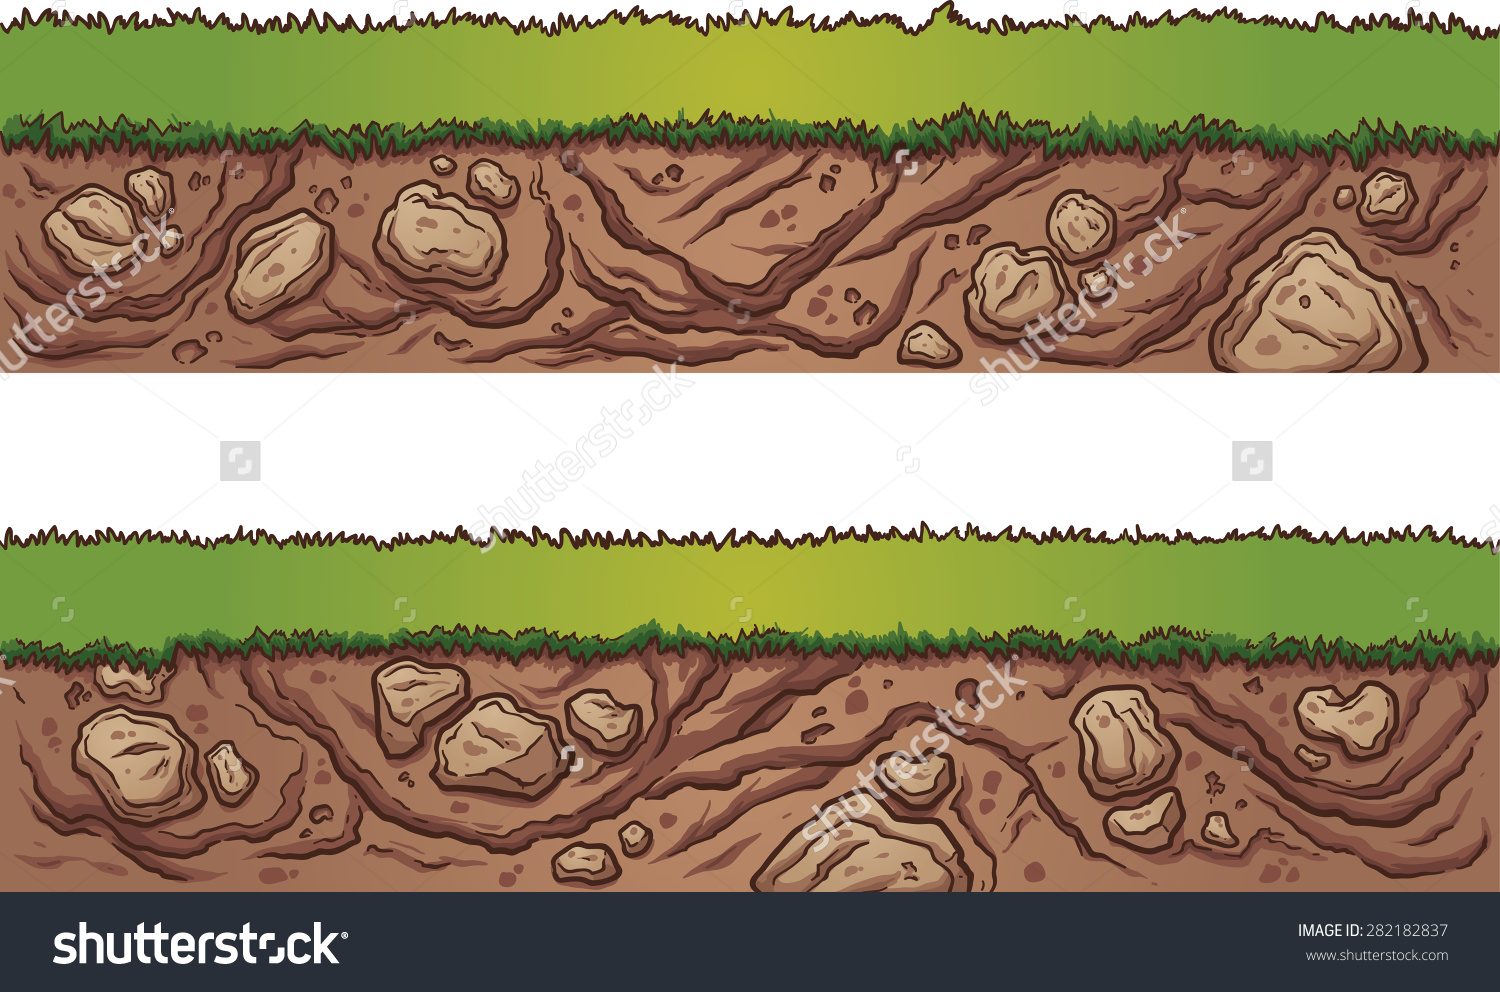 Grass Dirt Seamless Ground Vector Clip Stock Vector 282182837.